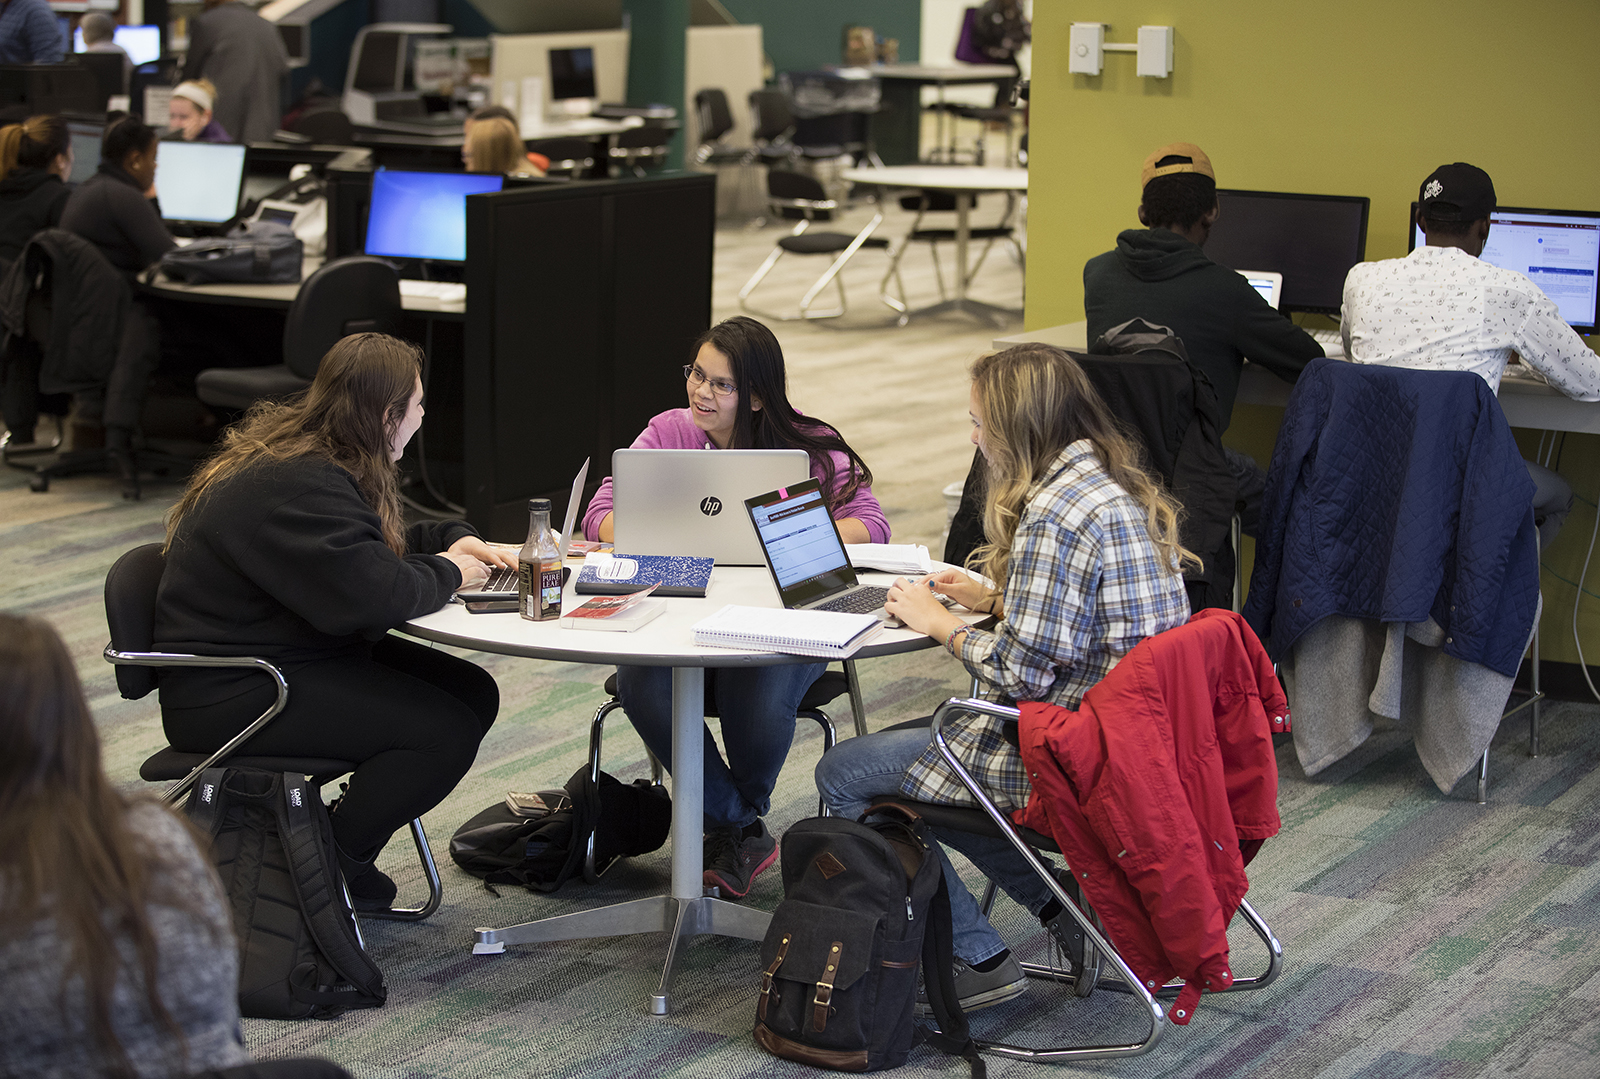 Students working in the Commons area